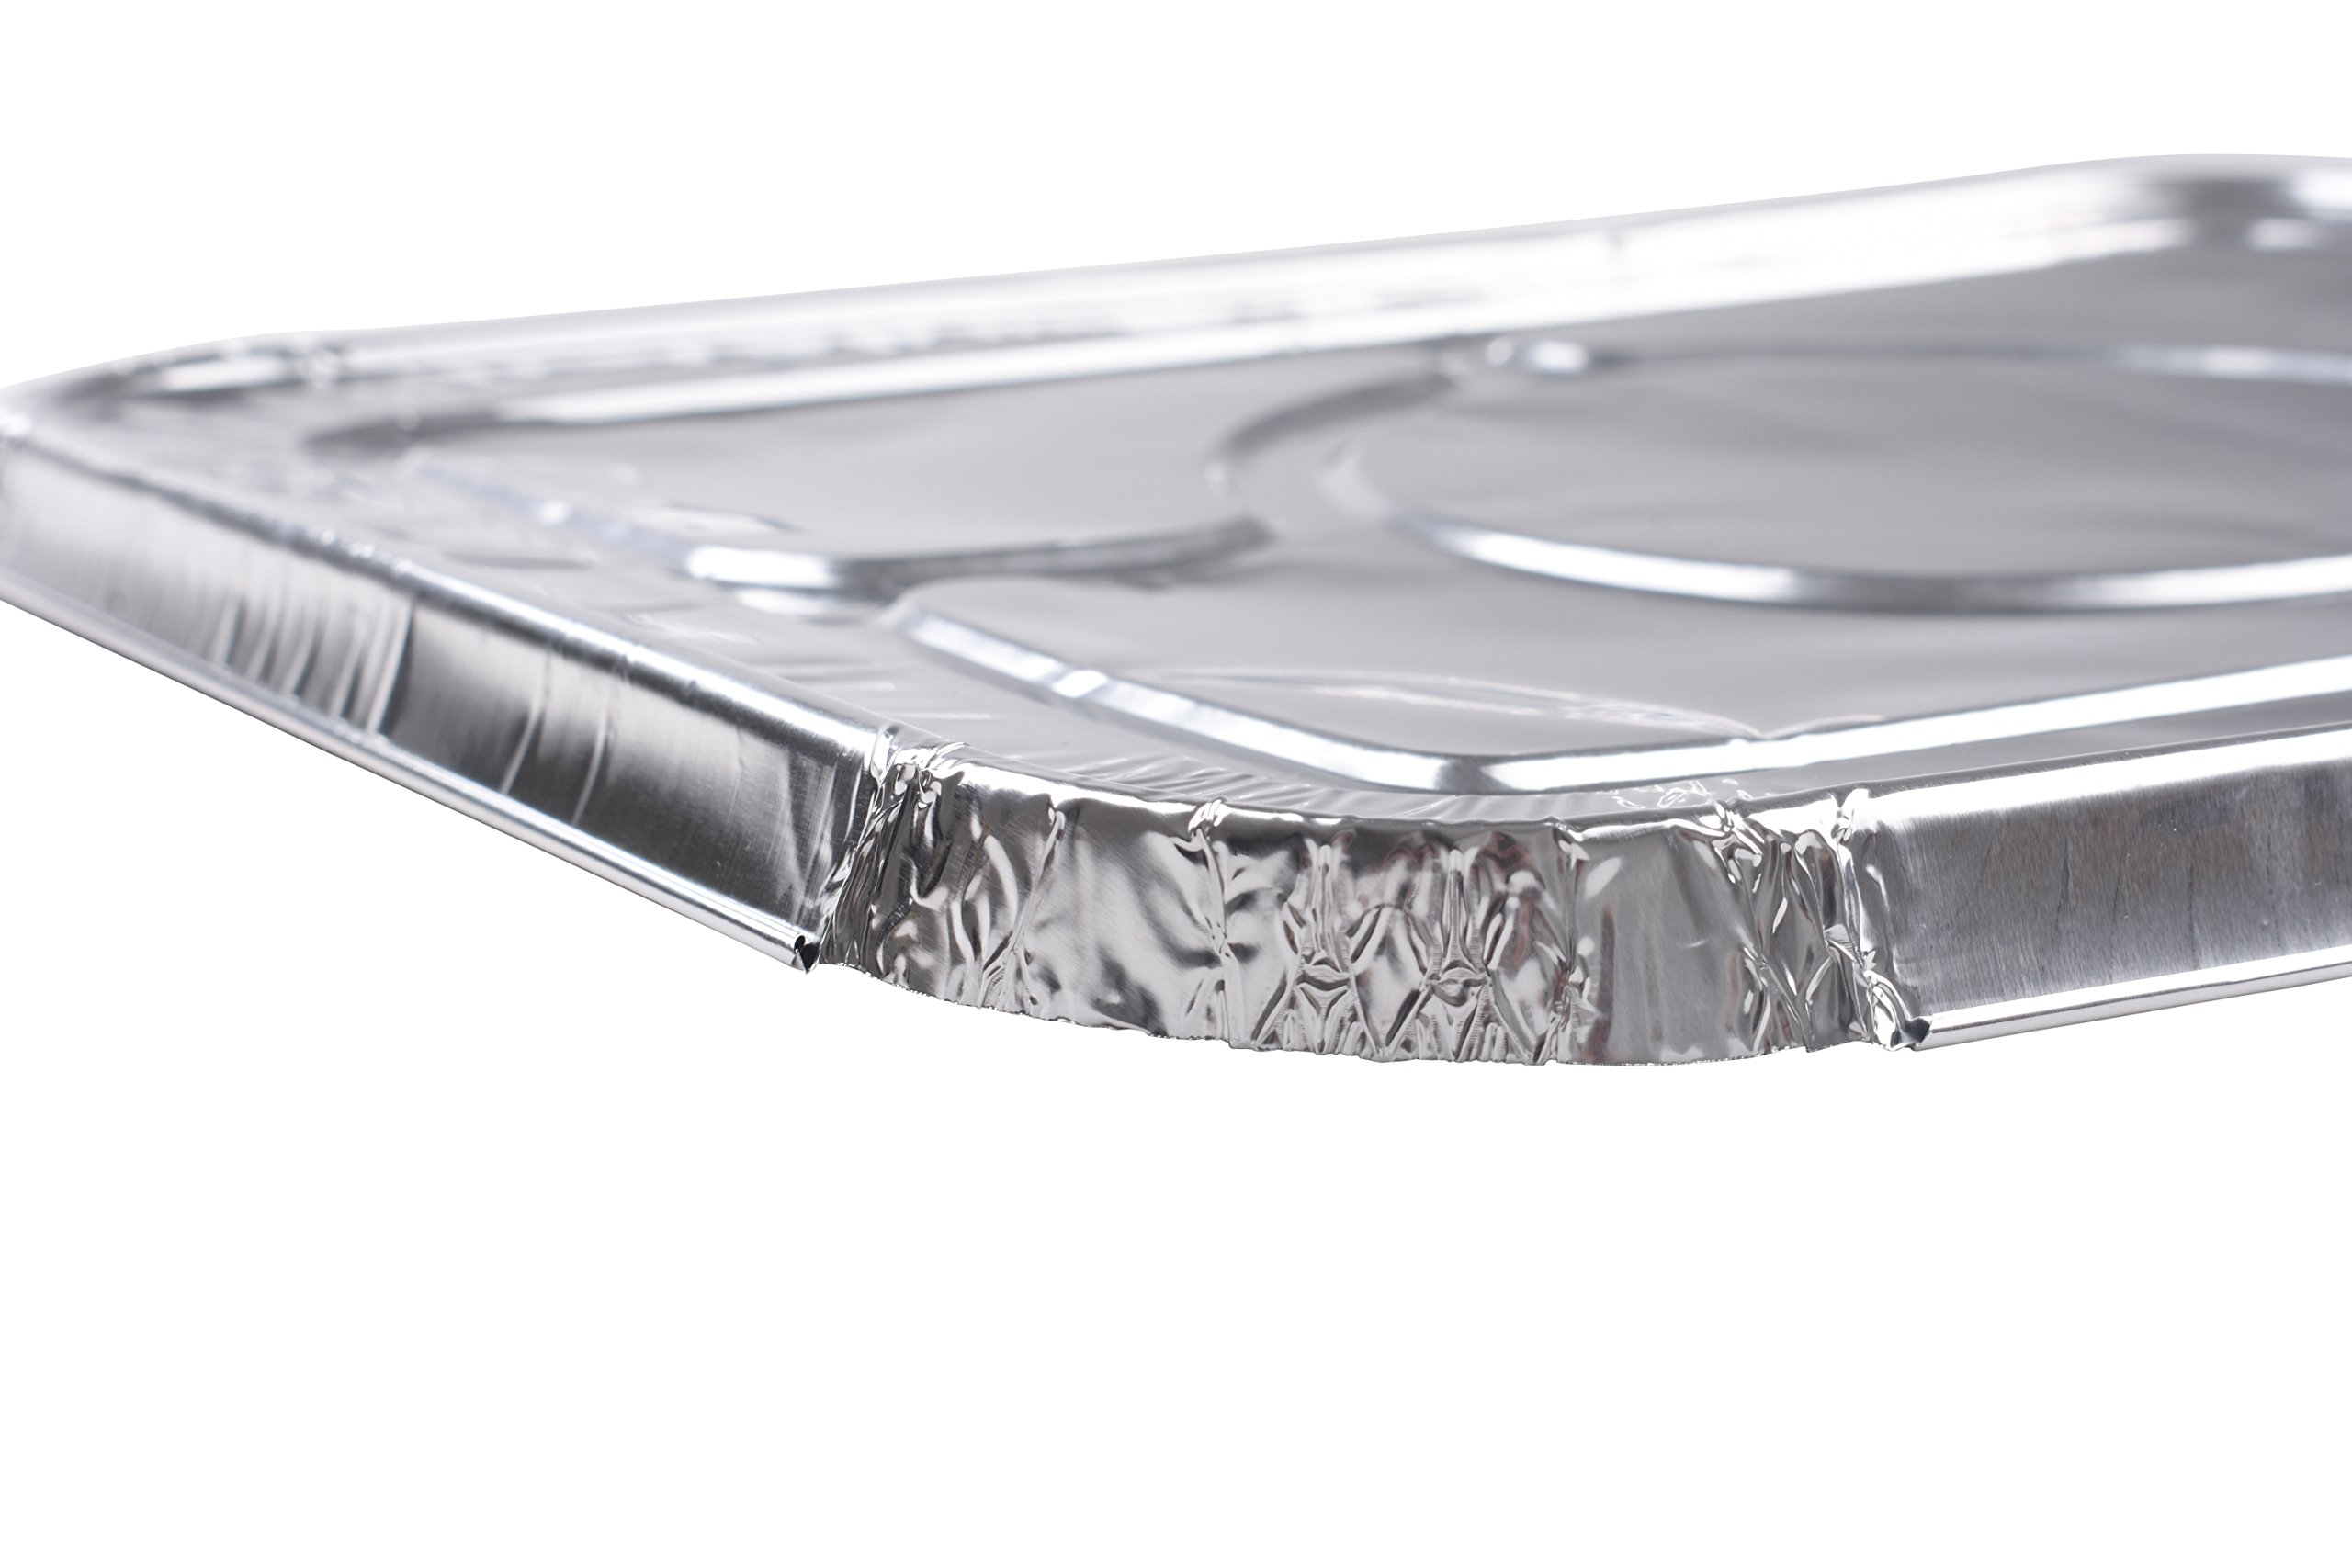 A World of Deals 9 X 13 Half Size Deep Foil Steam Pans with Lids, 30 Pack by A World Of Deals (Image #4)